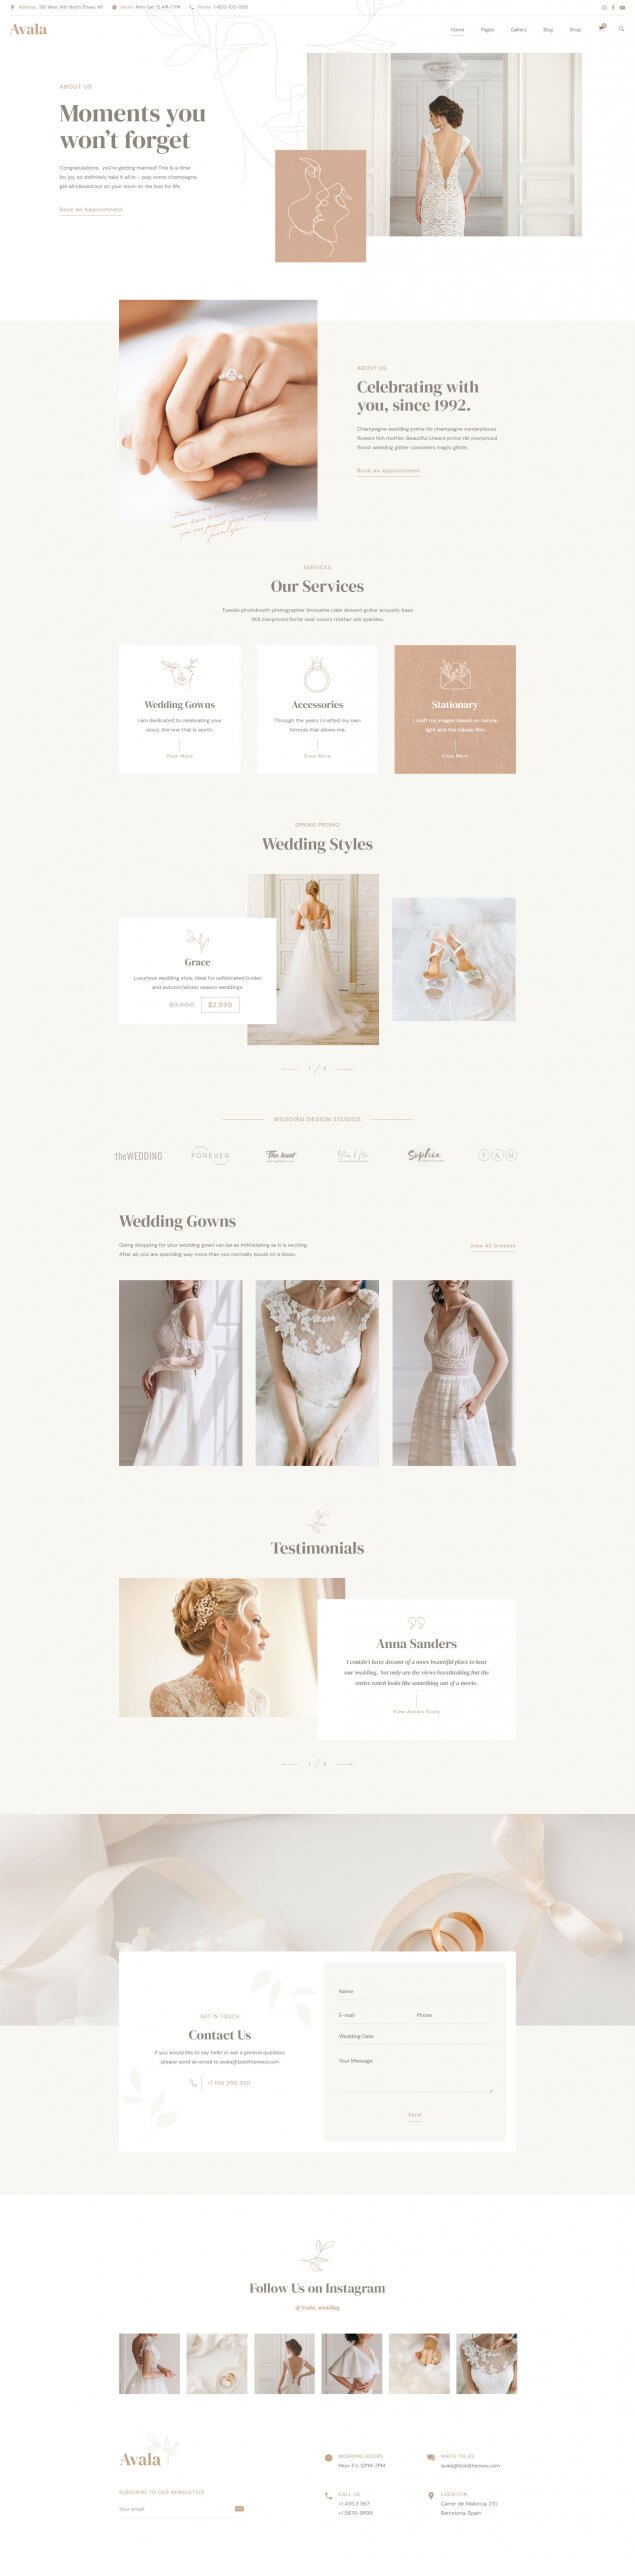 http://avala.bold-themes.com/wp-content/uploads/2021/02/Spring-Home-01-scaled.jpg